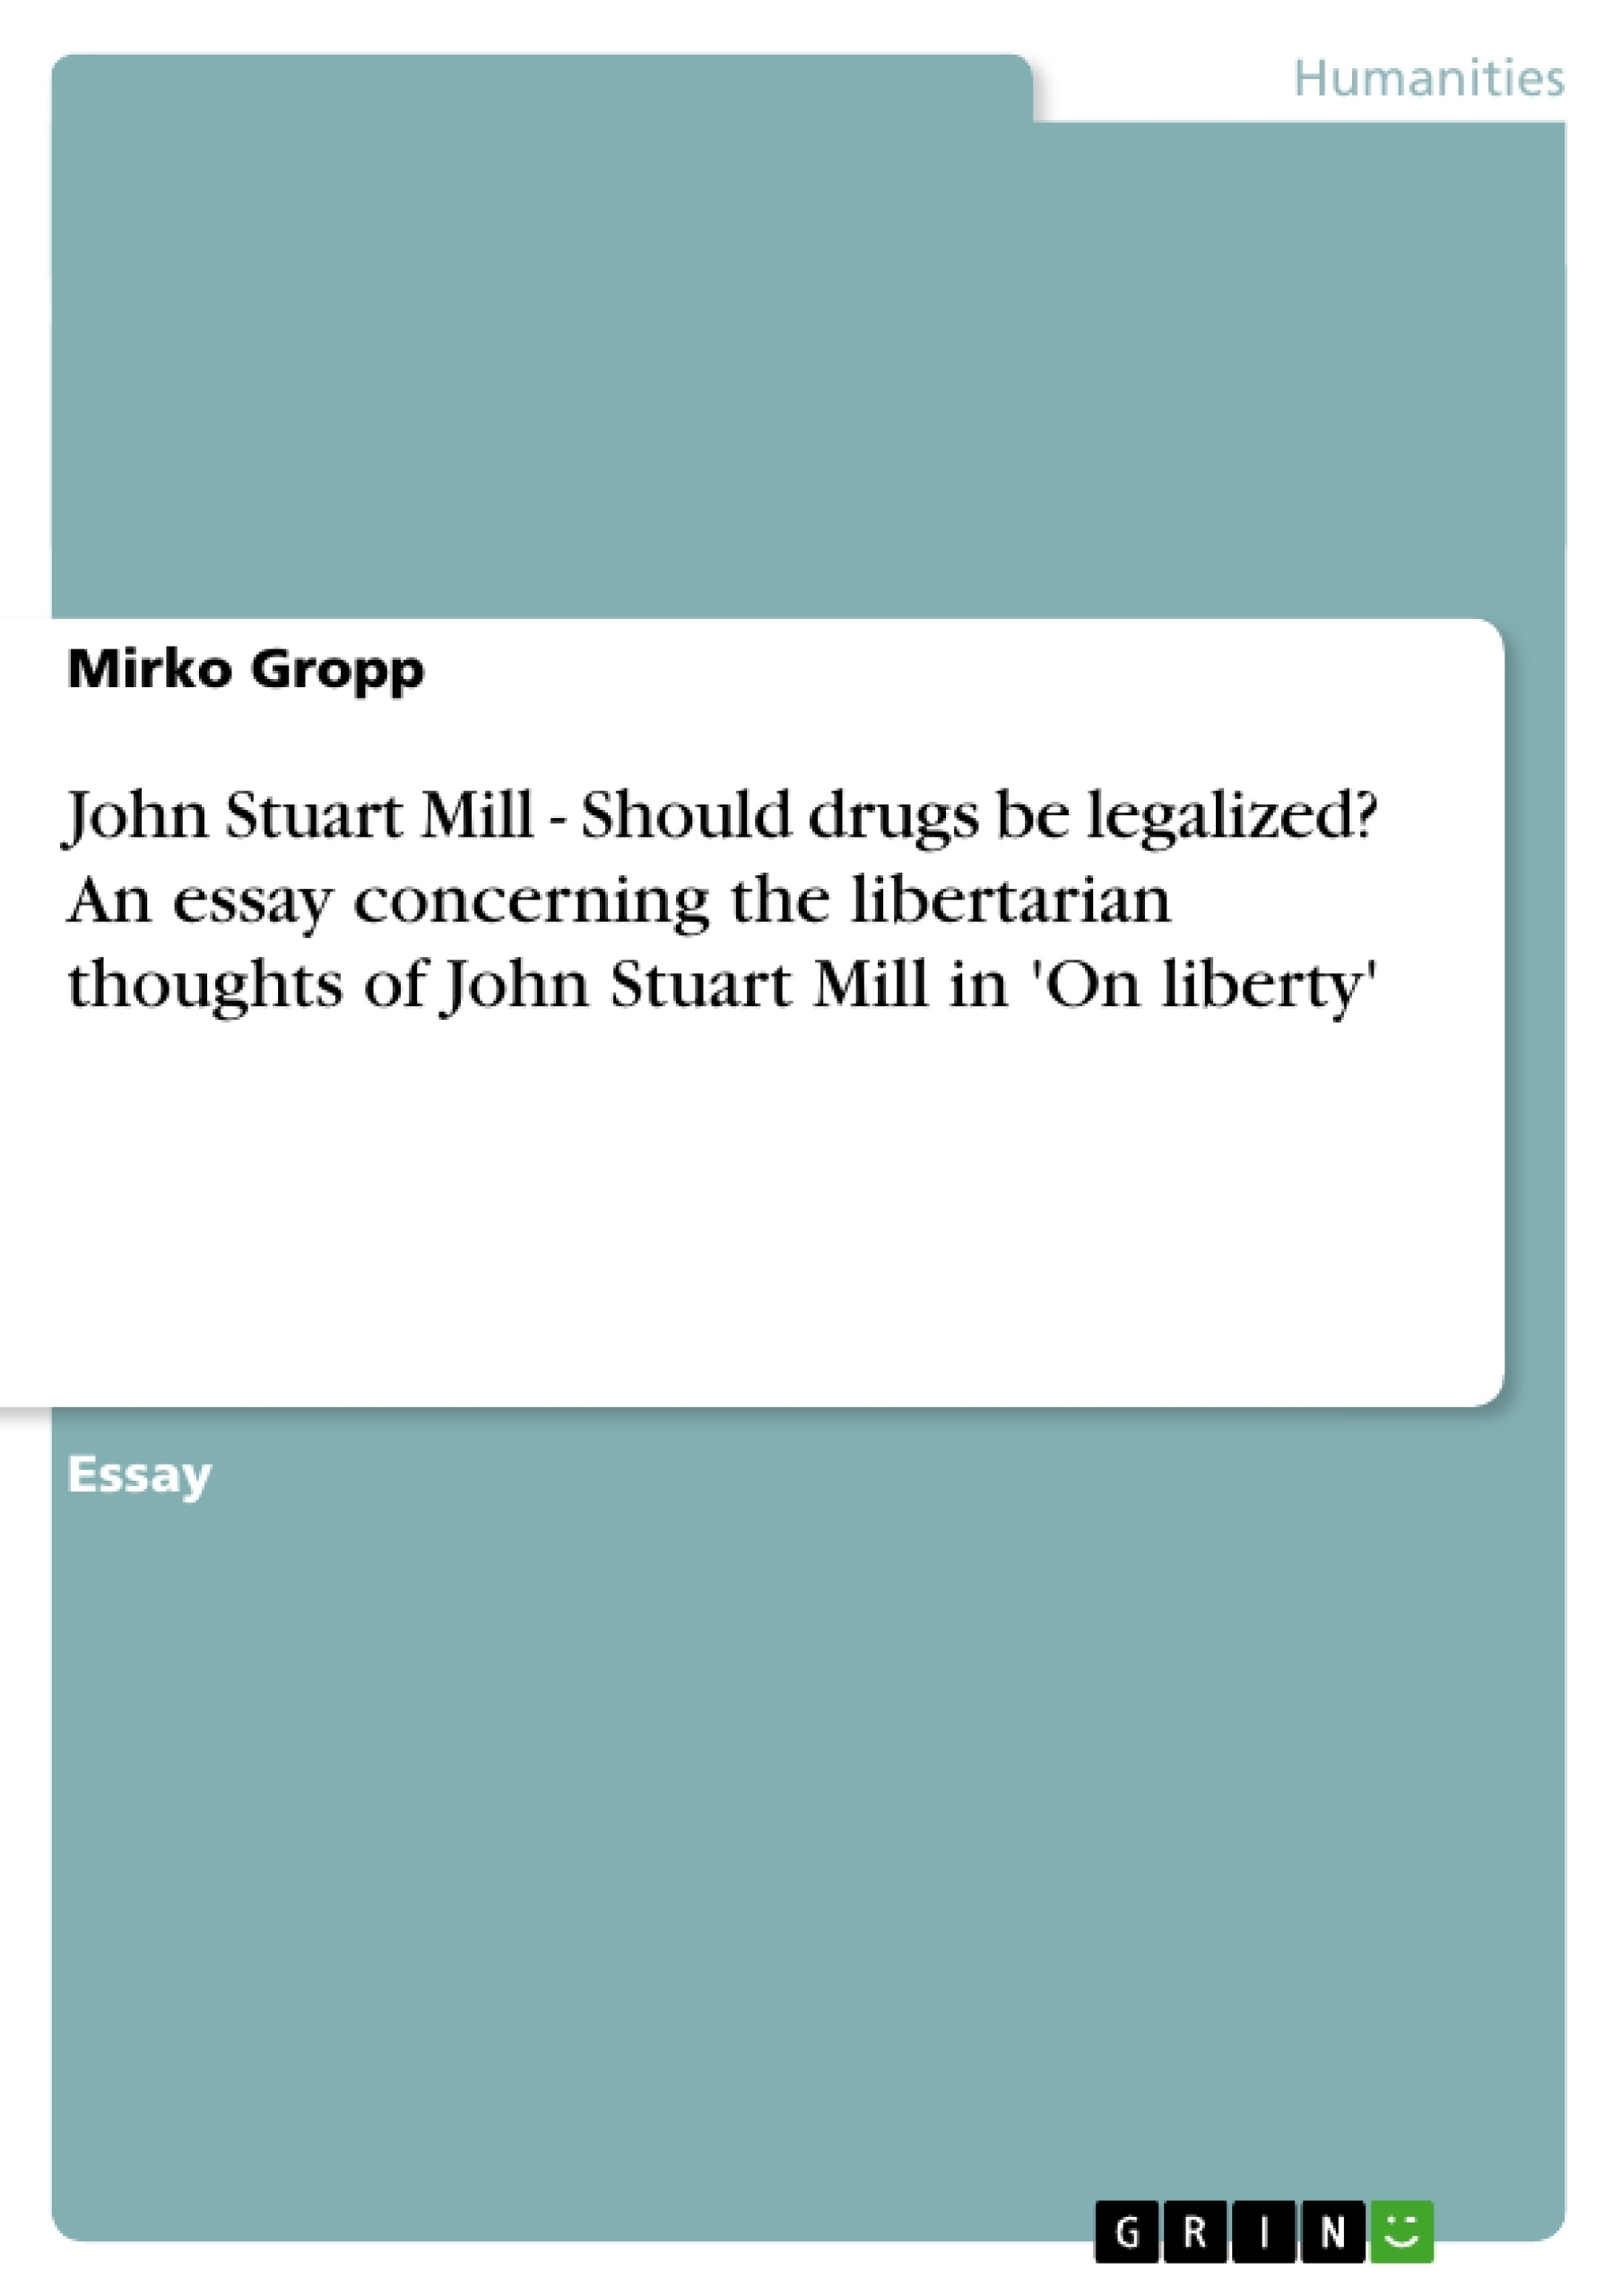 Utilitarianism   John Stuart Mill   Feedbooks SlidePlayer